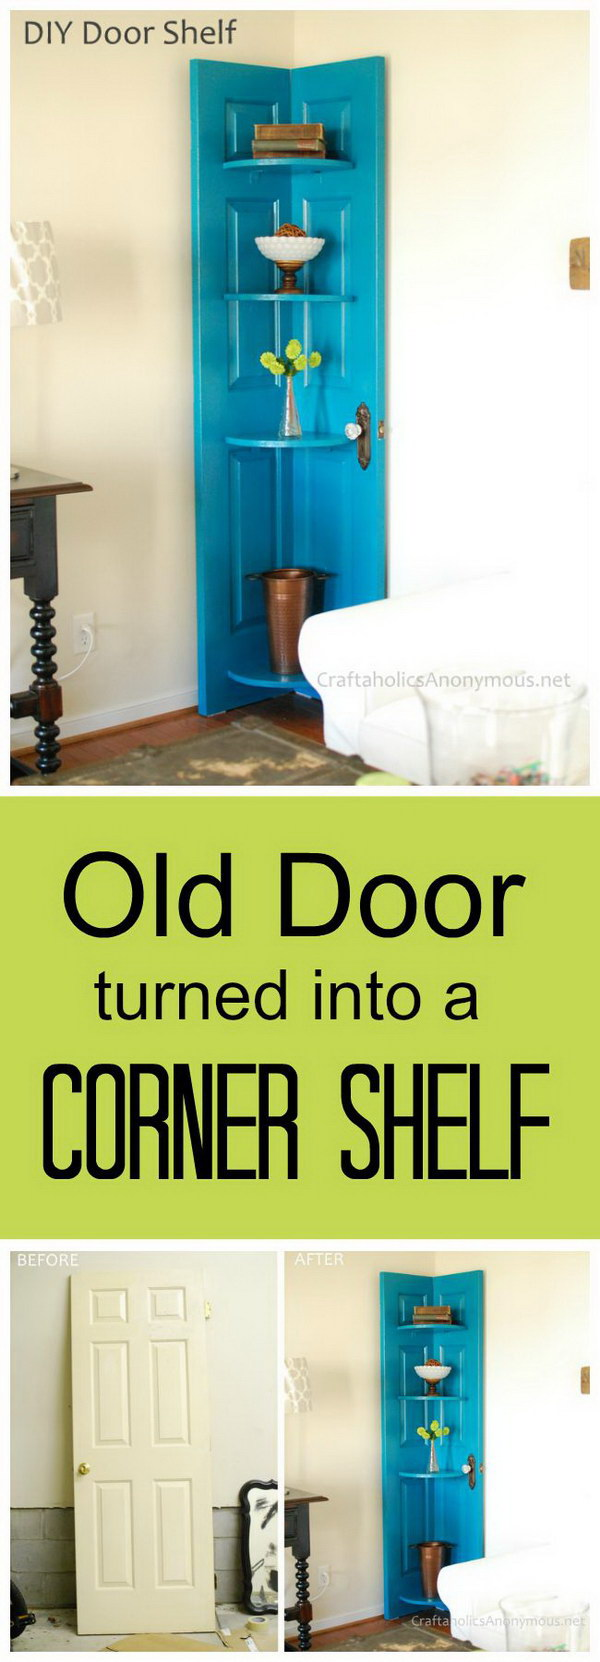 DIY Corner Door Shelf.